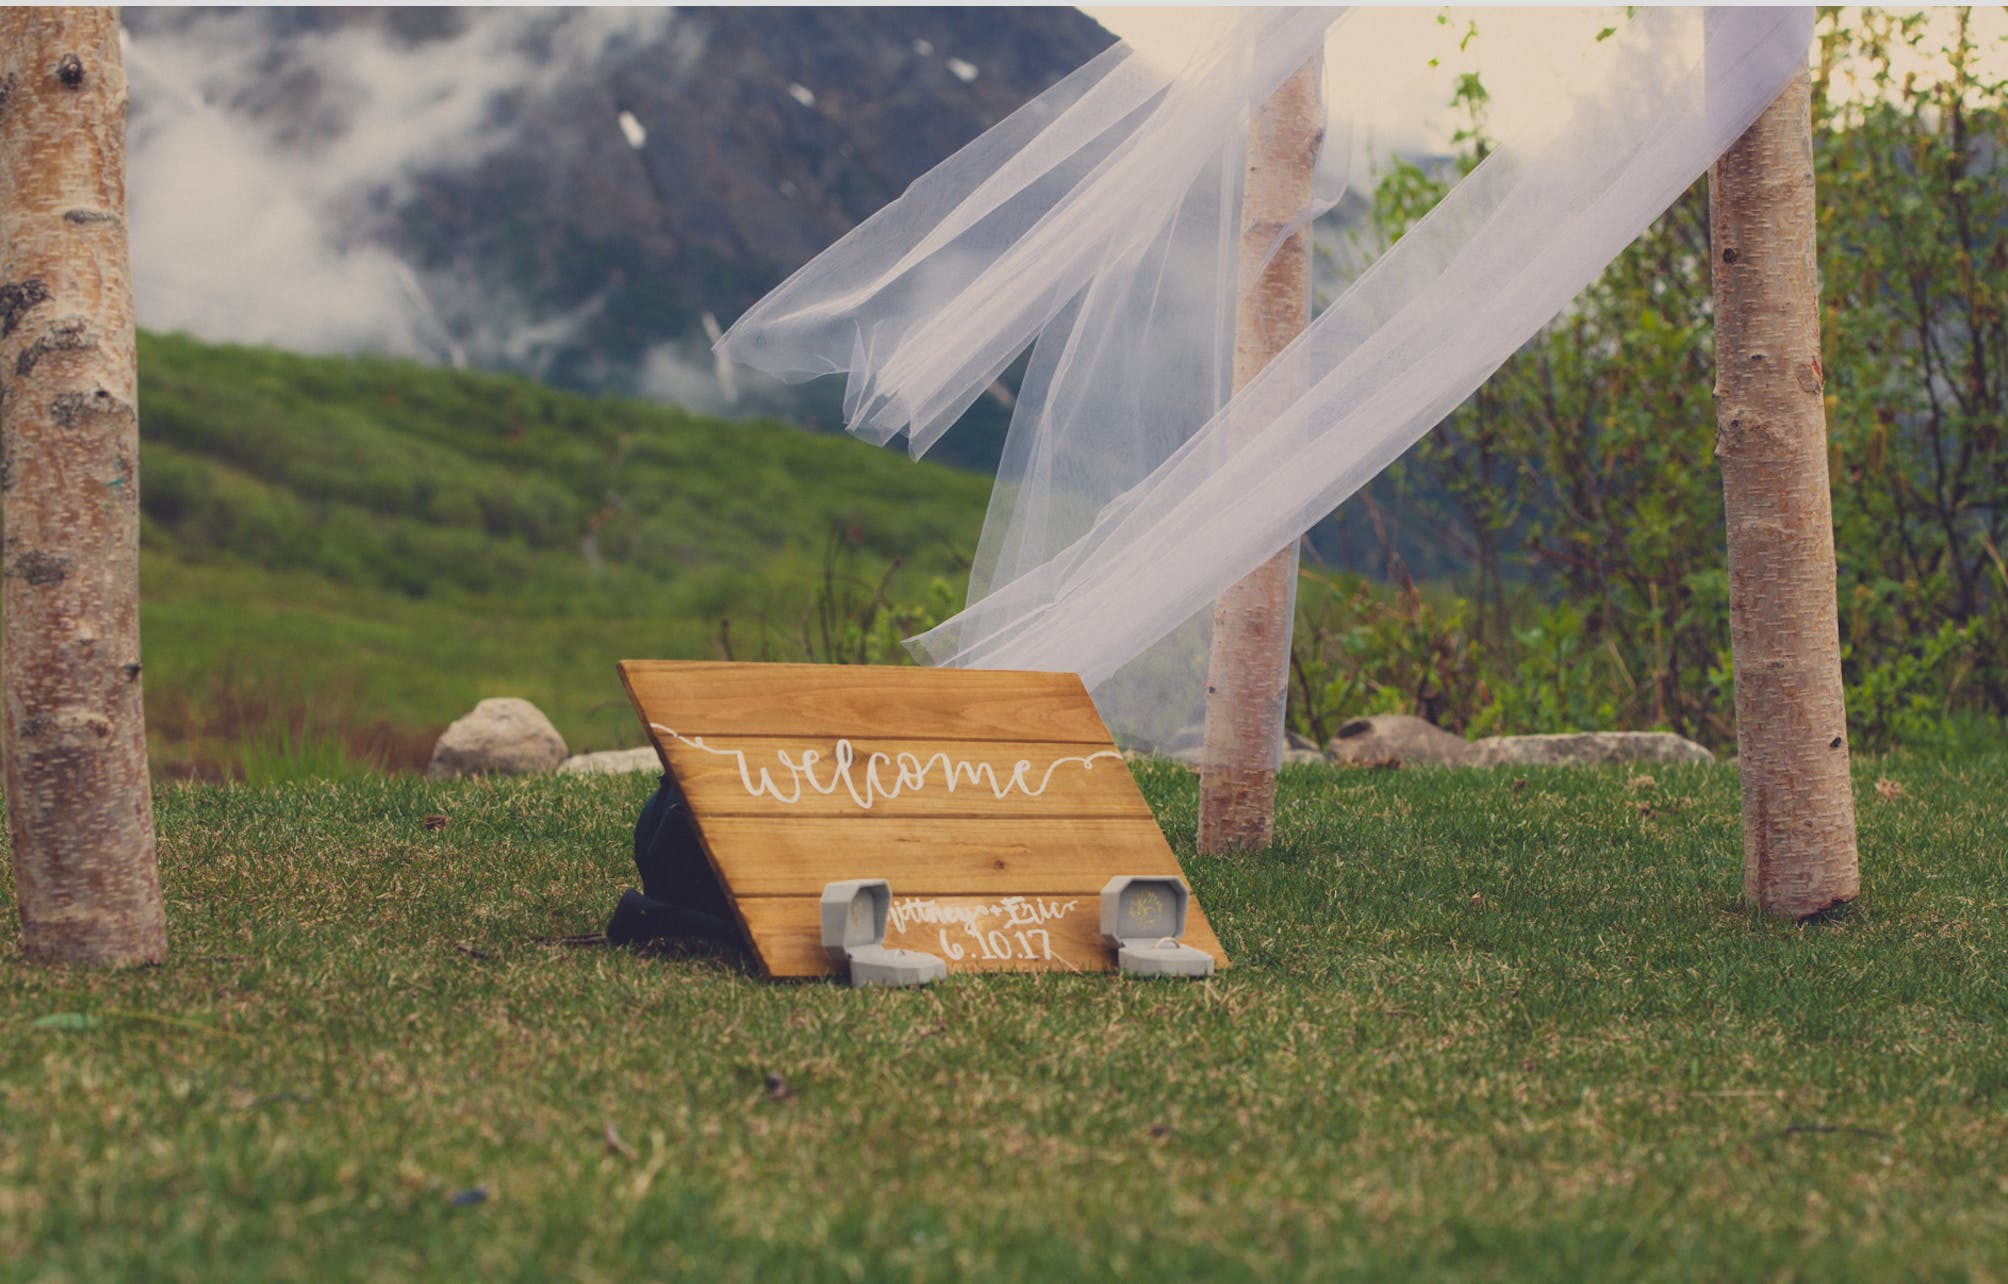 Welcome Printed Board on Grass